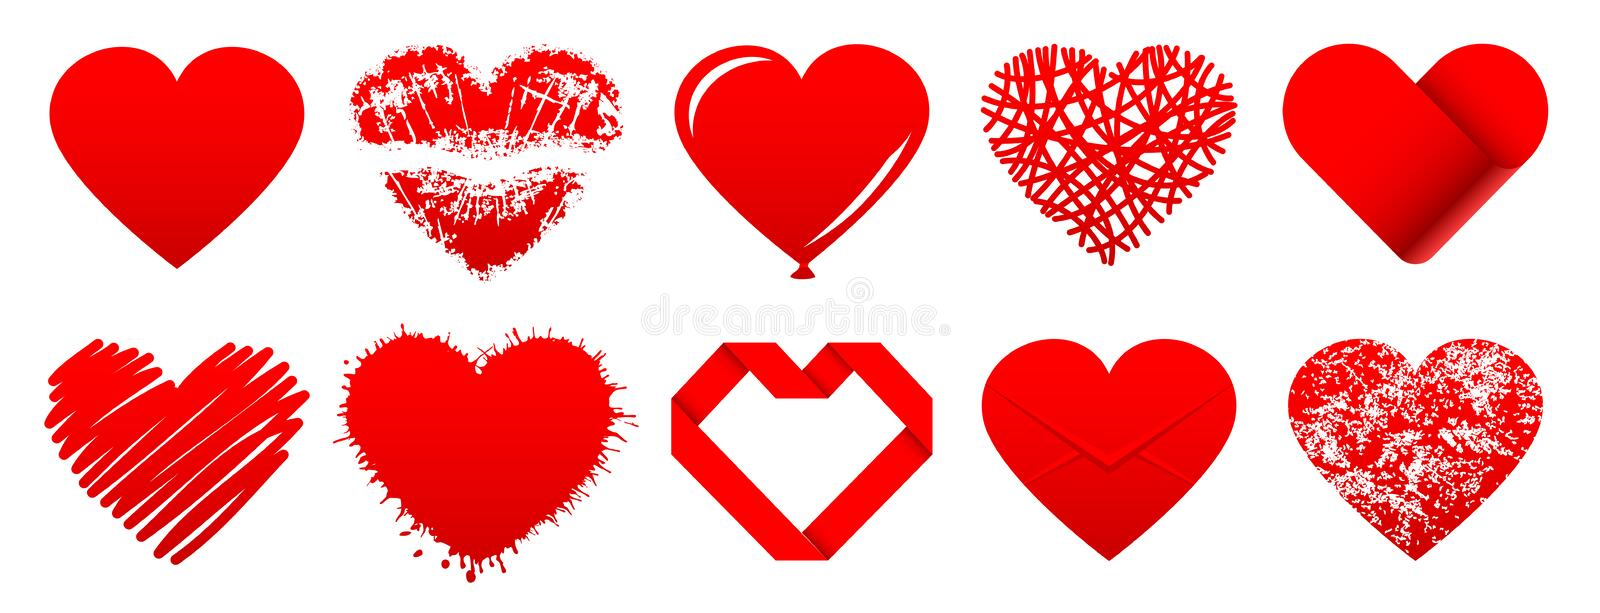 Ten Red Hearts Different Icons stock illustration